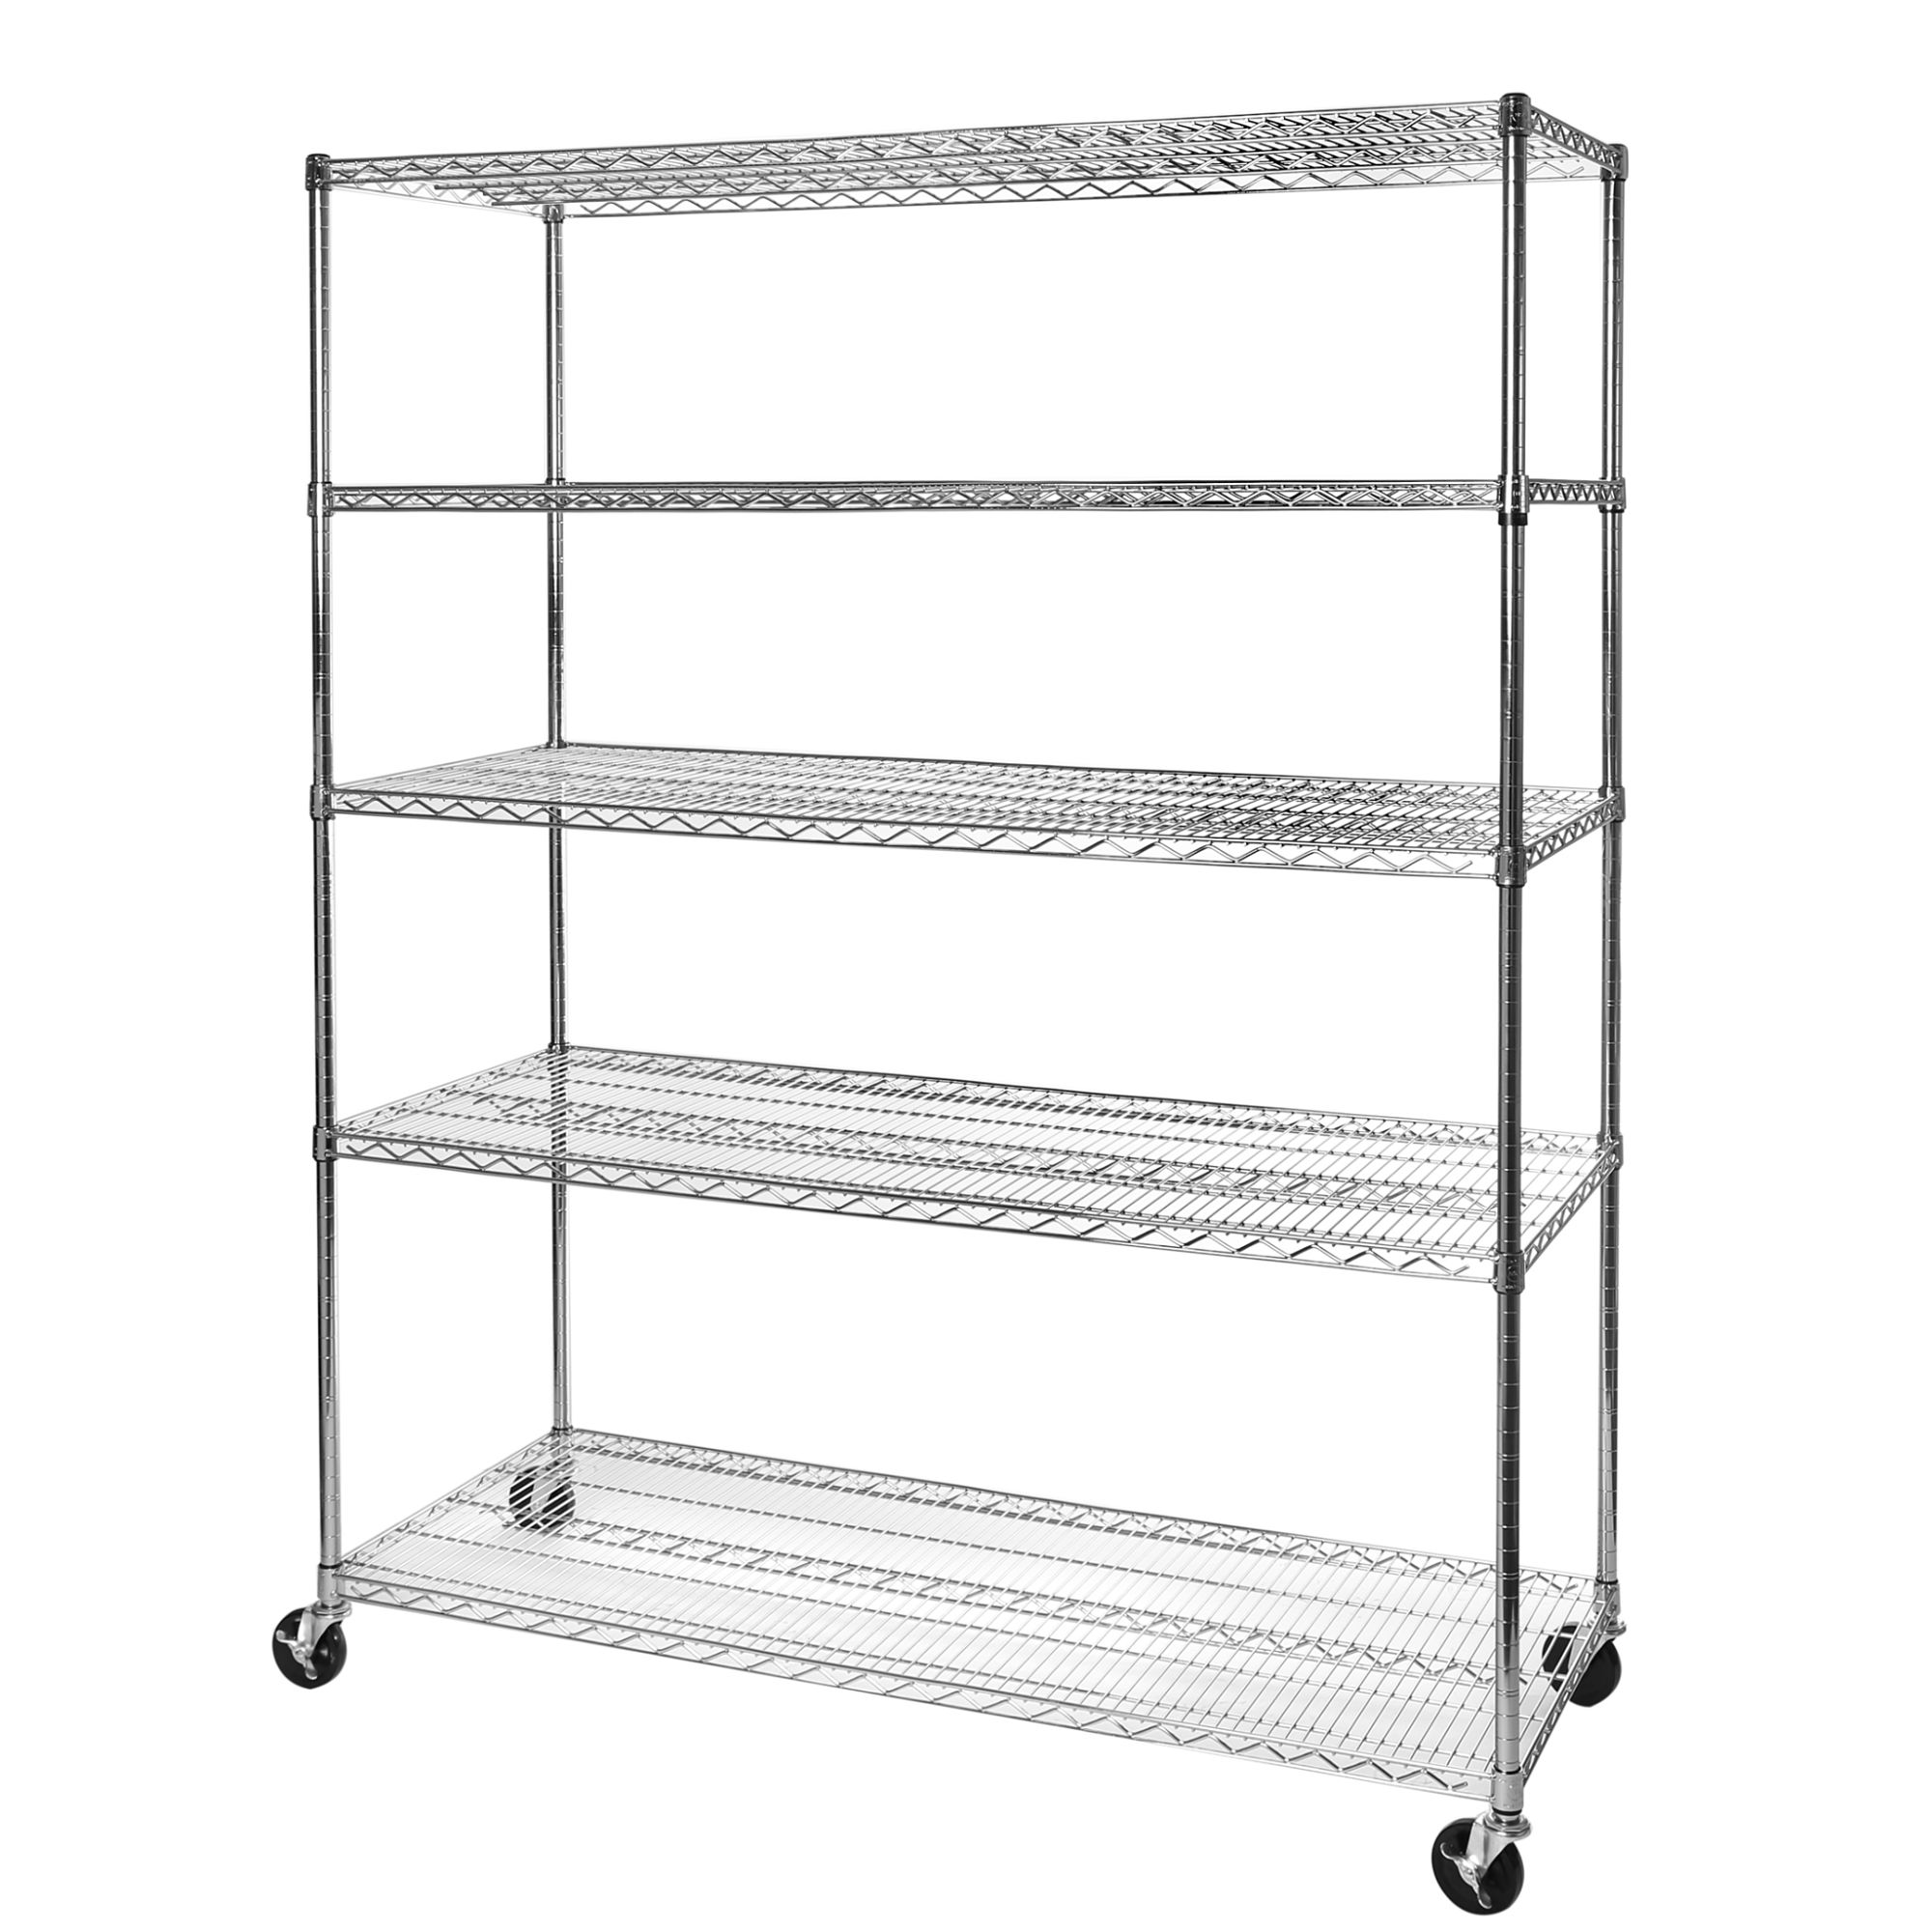 72 in. x 60 in. x 24 Commercial-Grade 5-Tier Steel Wire Shelving with Wheels by Seville Classics